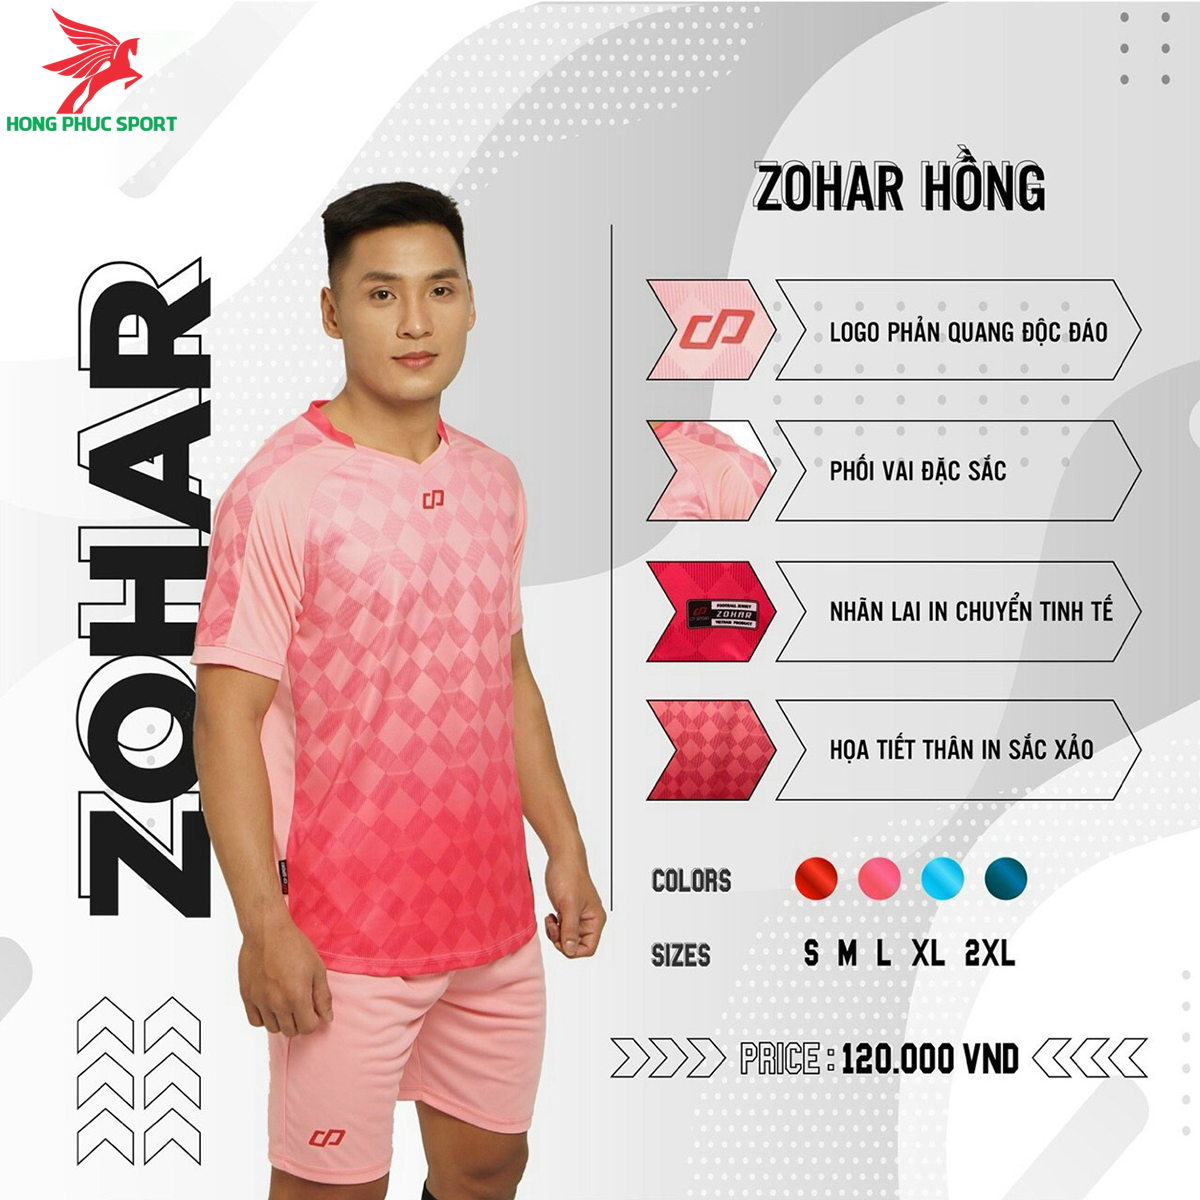 https://cdn.hongphucsport.com/unsafe/s4.shopbay.vn/files/285/ao-khong-logo-cp-zohar-mau-hong-1-60596182c3194.png